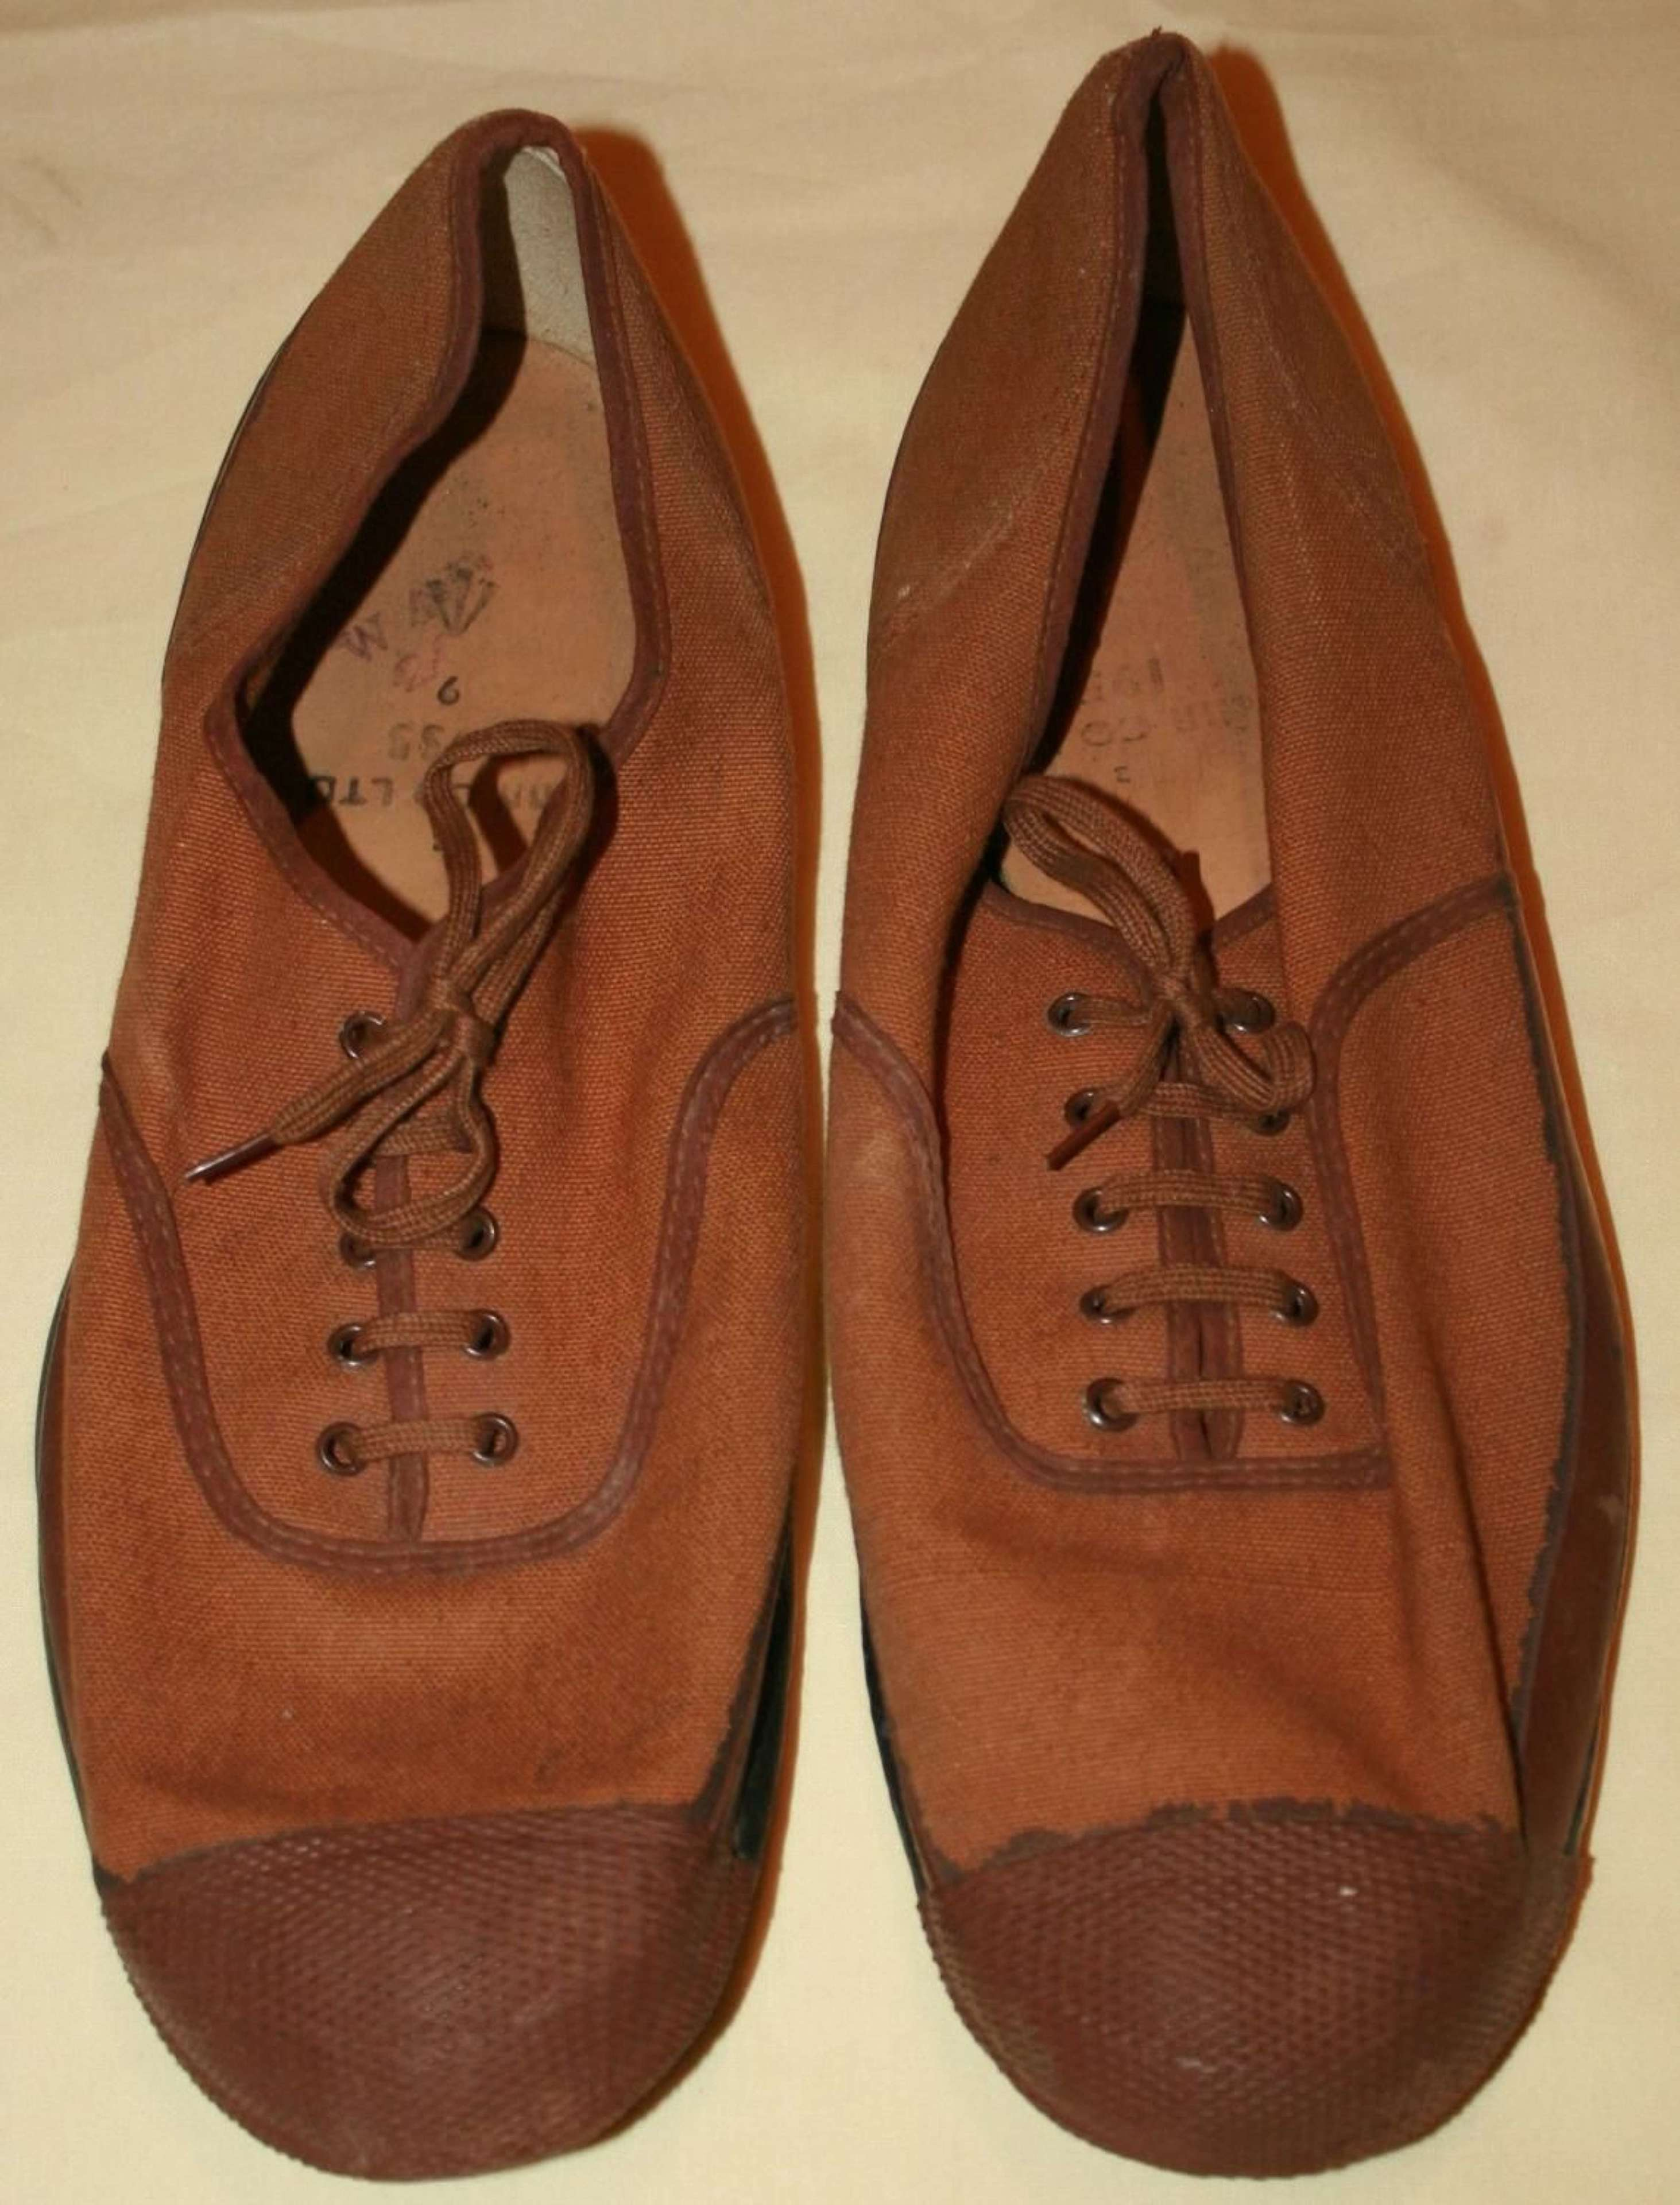 A GOOD USED PAIR OF THE BRITISH ARMY ISSUE PLIMSOLLS